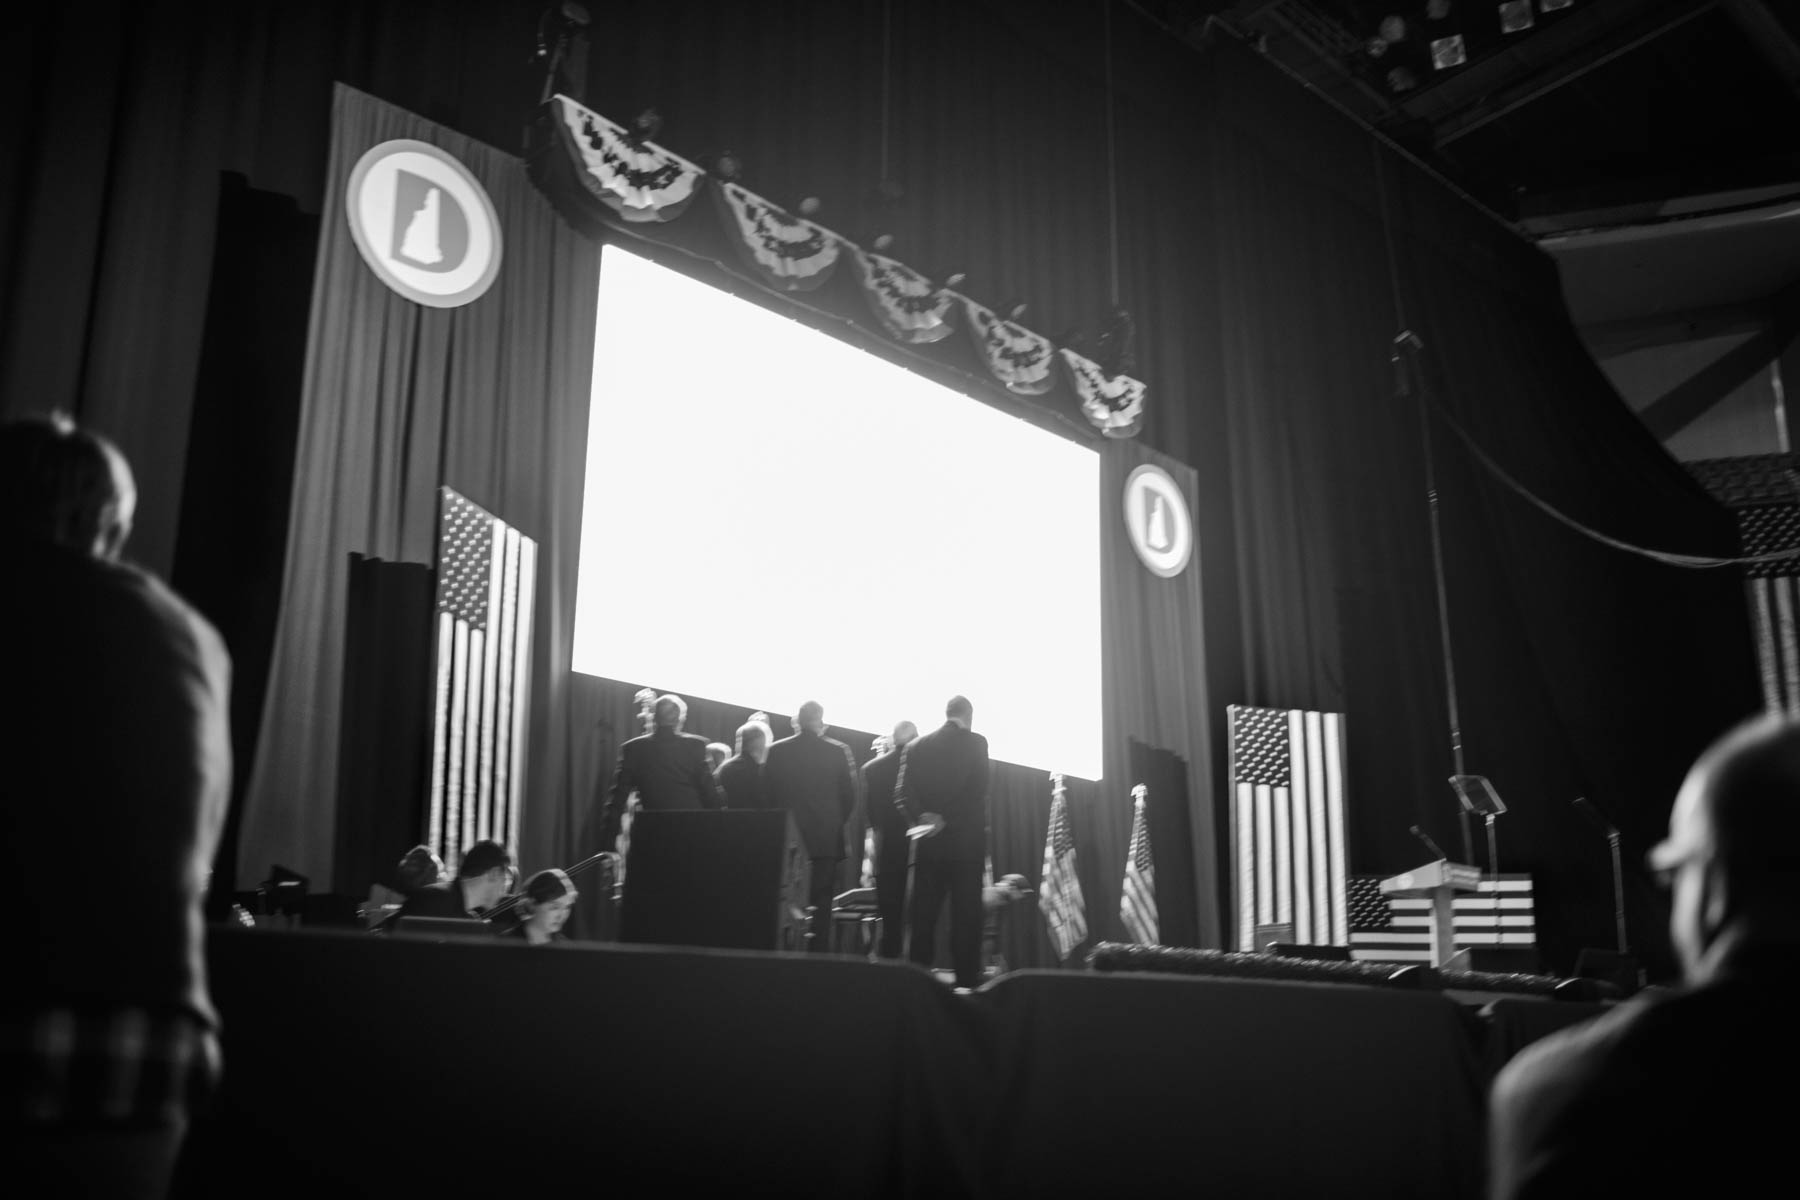 5 Feb 2016 - Manchester, New Hampshire - Democratic Party officials are running a slideshow at the 2016 McIntyre-Shaheen 100 Club Celebration.